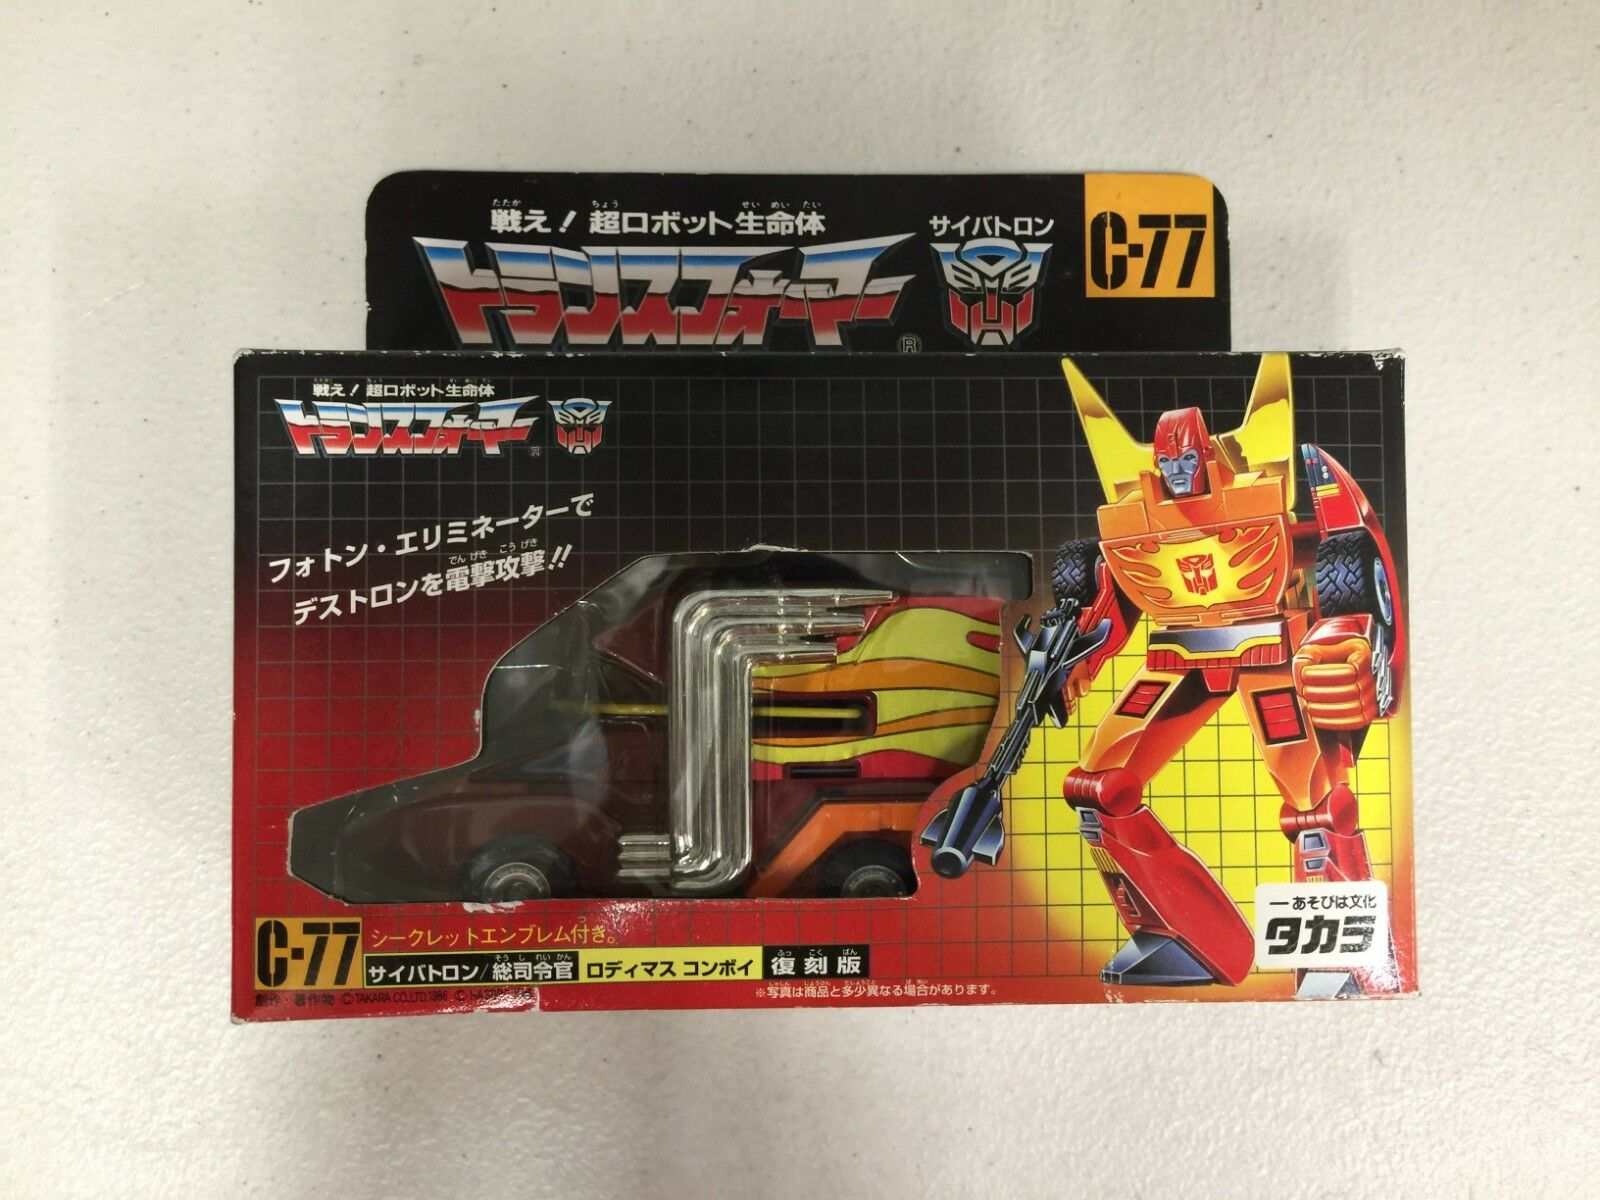 Transformers C-77 Rodimus Convoy Figure Collectible Rare Never Opened Japanese